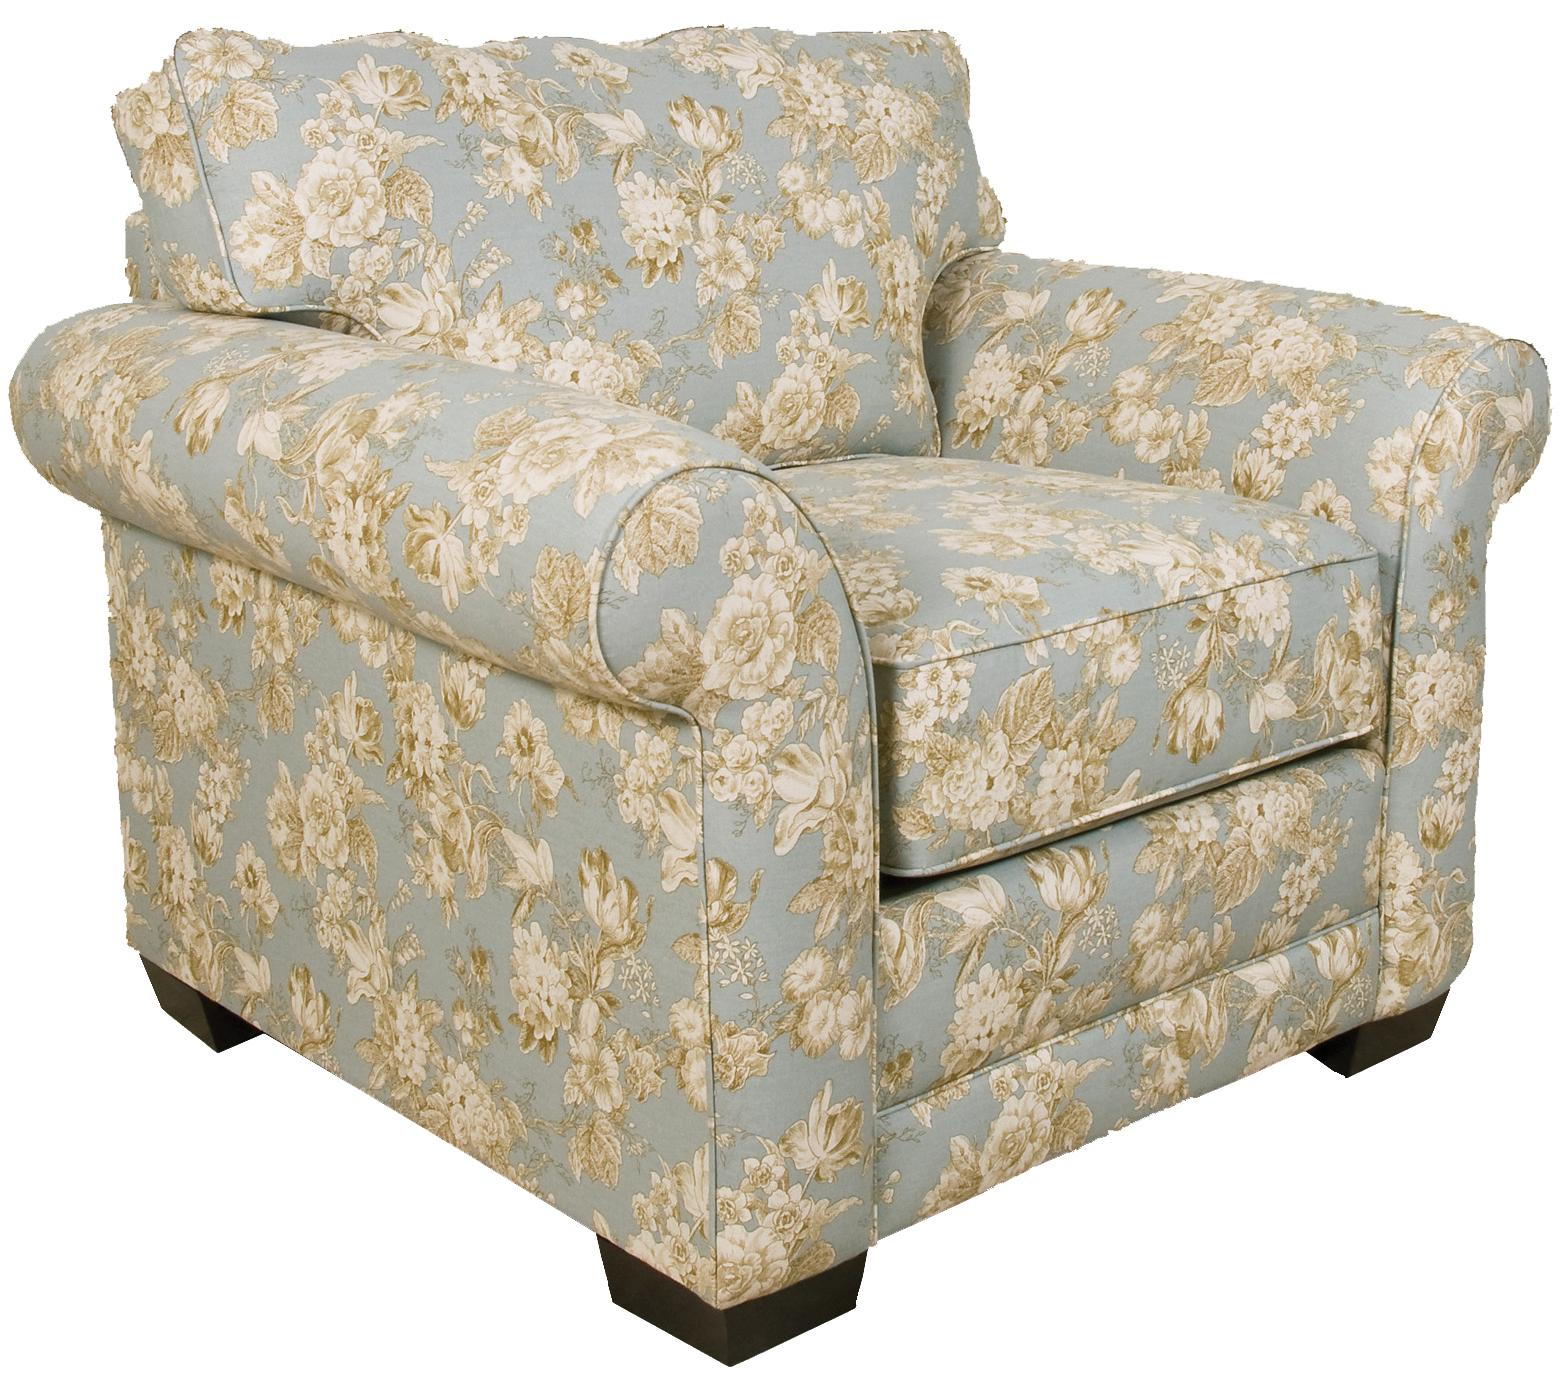 England Brantley Upholstered Chair - Item Number: 5634